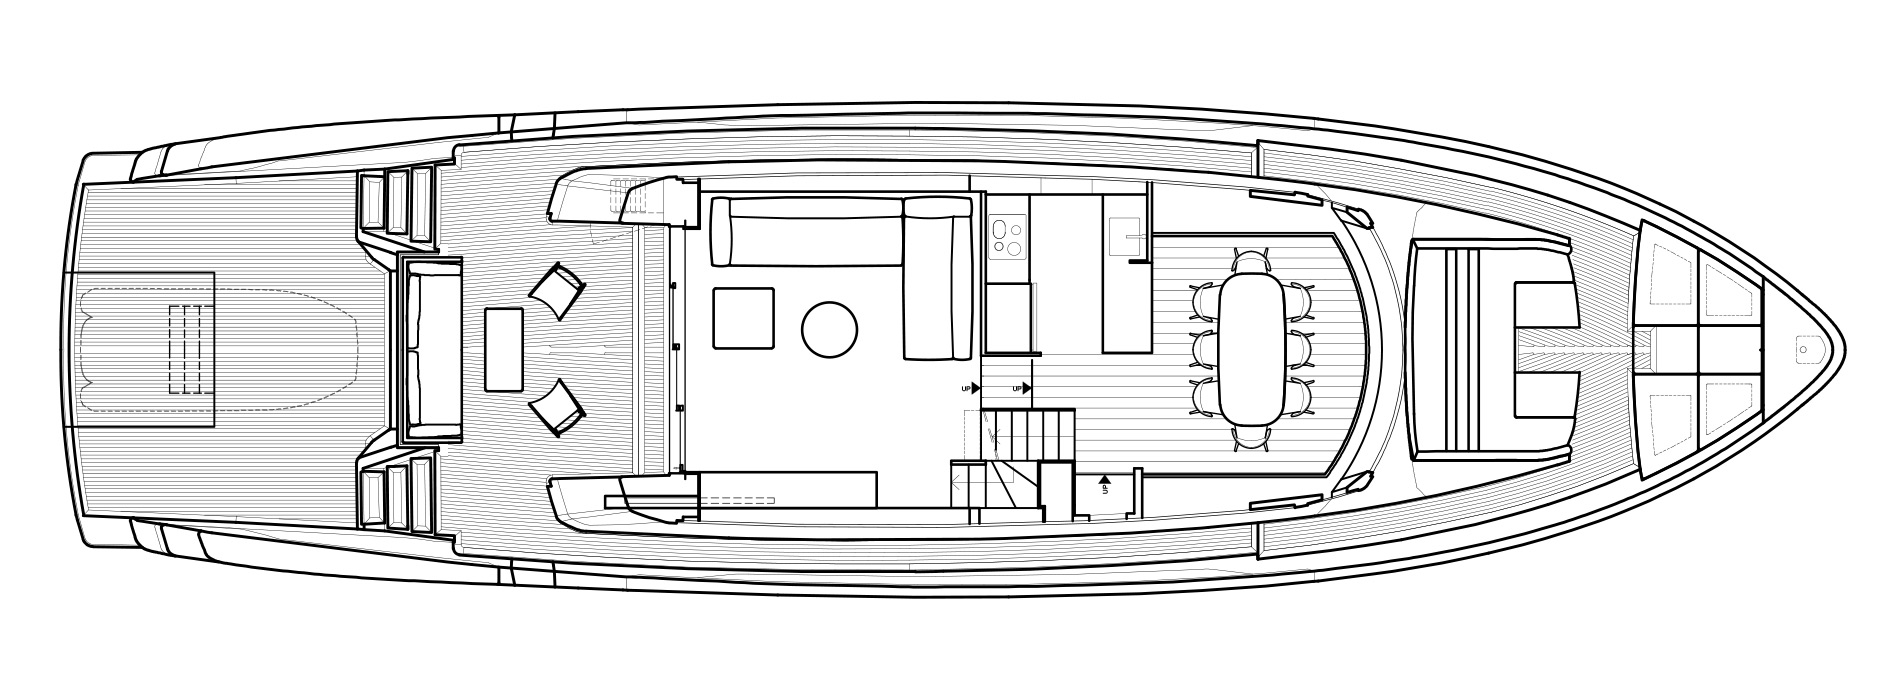 Sanlorenzo Yachts SX76 Main deck Version B